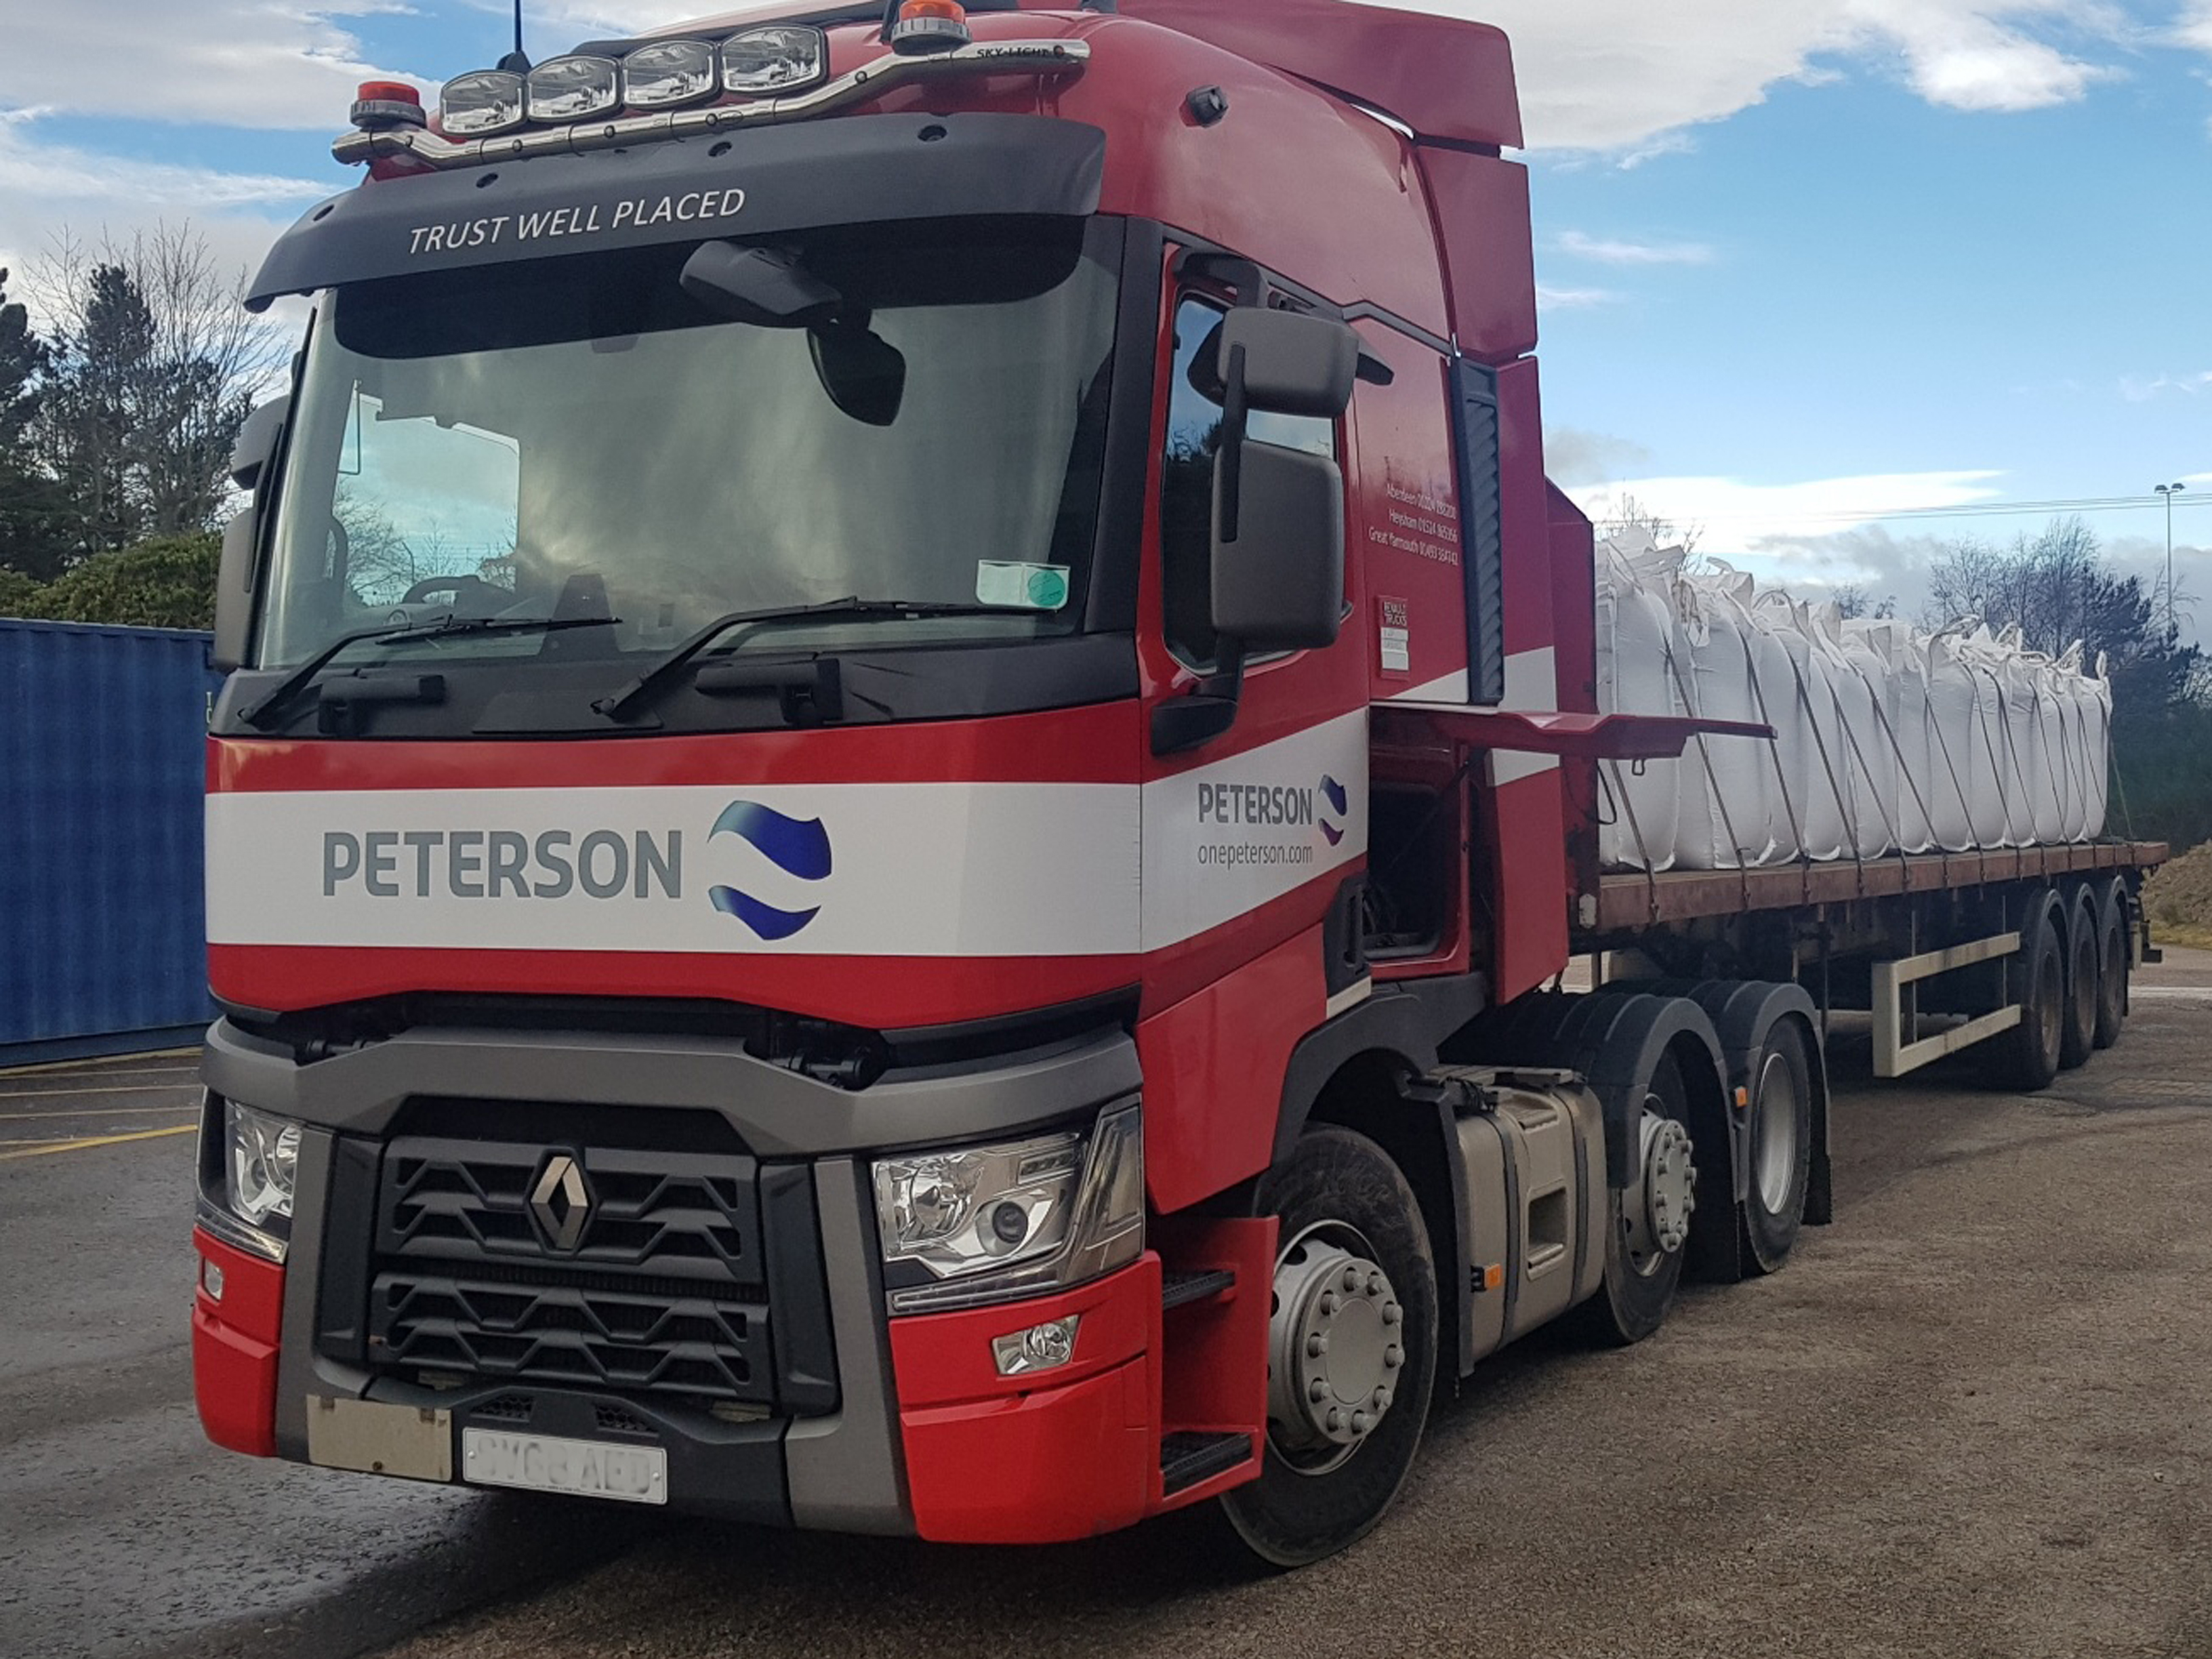 Peterson (UK) Ltd